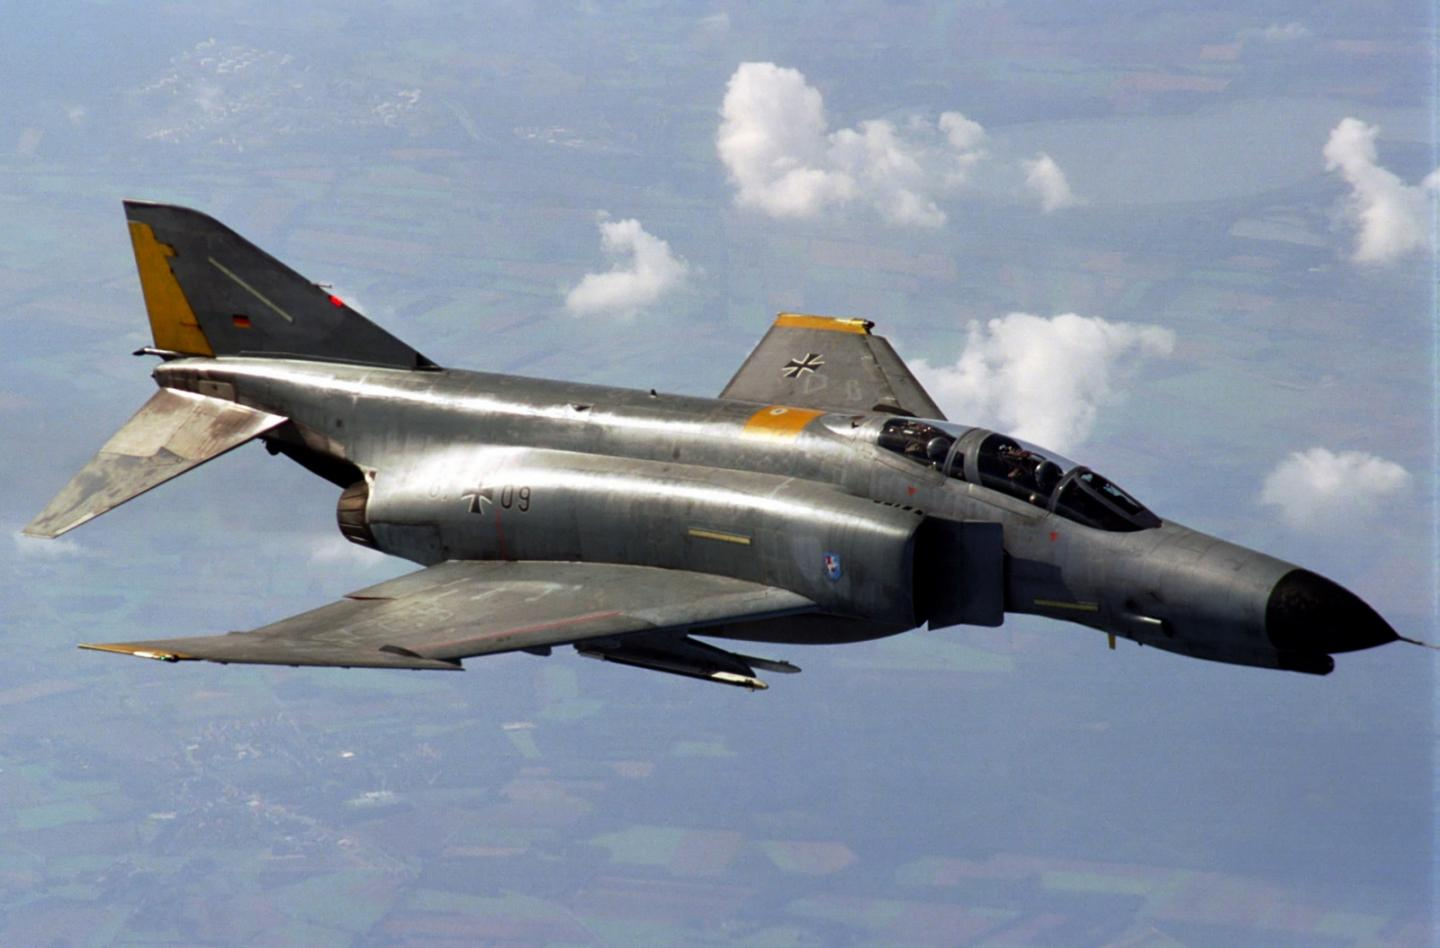 Irans Air Force Just Lost a Fighter Jet: U.S. Made F-4 Phantom Just Went Down